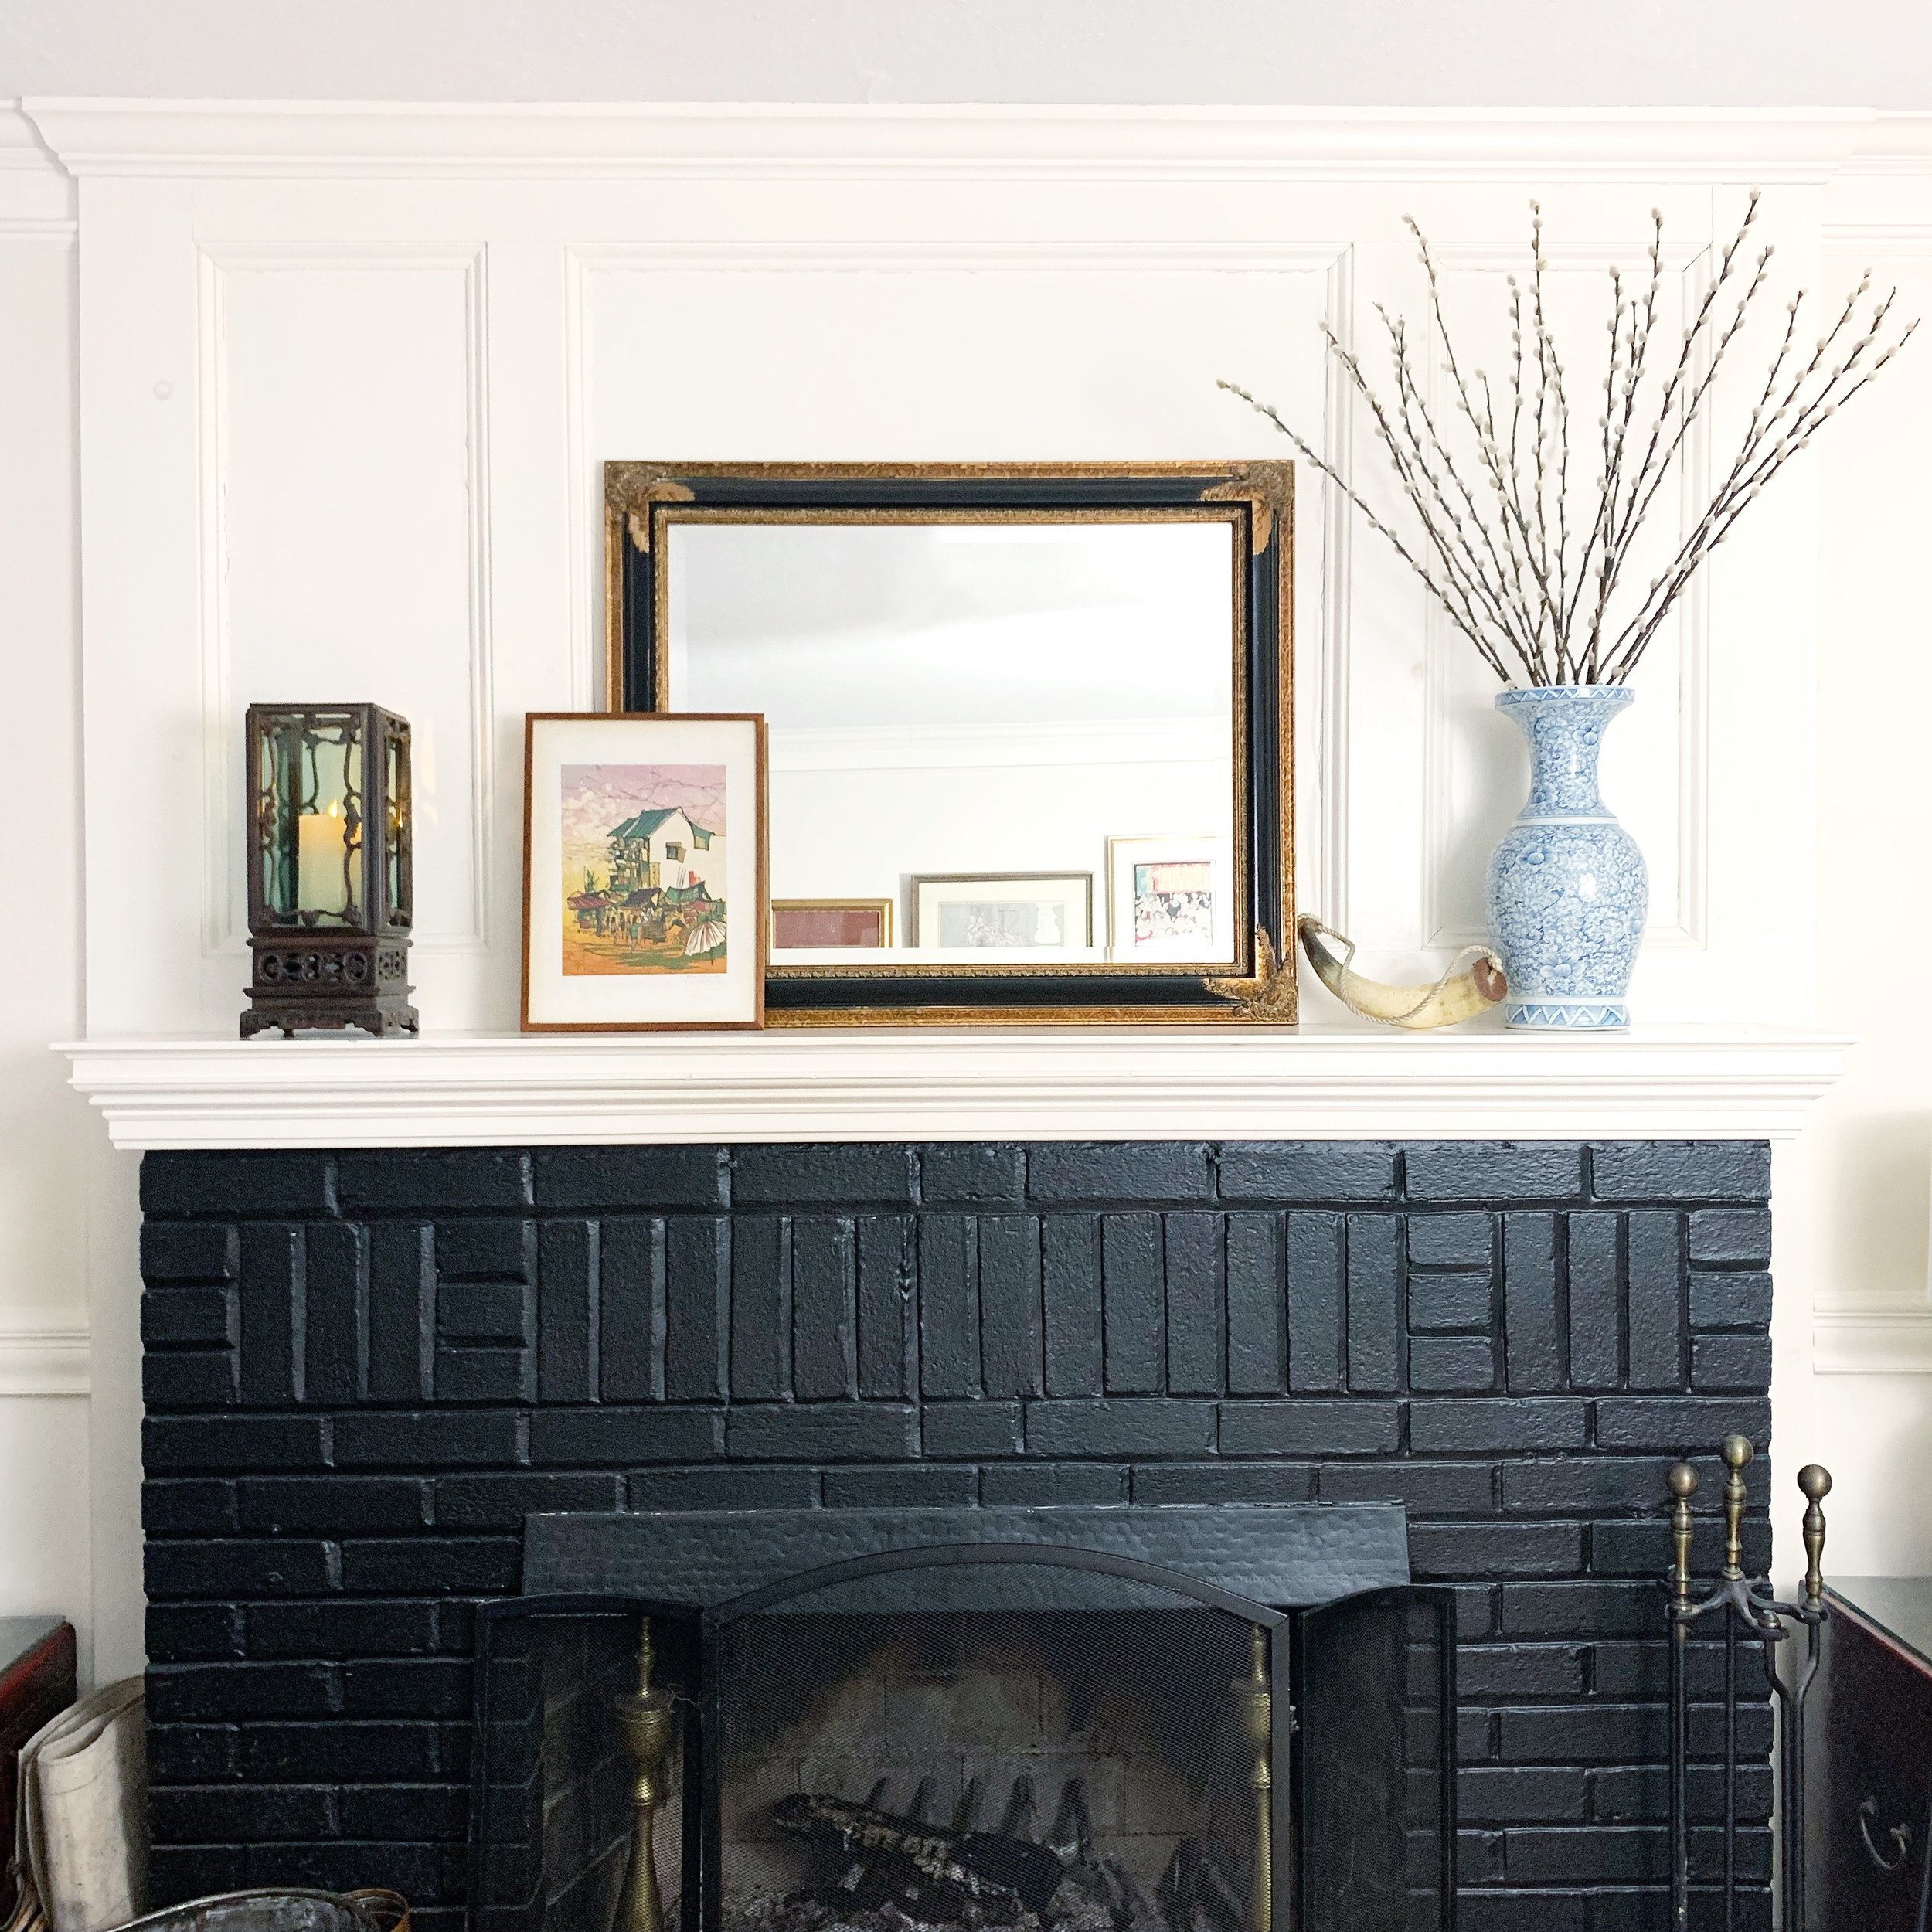 A slightly different mantel scape: mirror positioned horizontally, rosewood lantern, and Singaporean batik artwork.